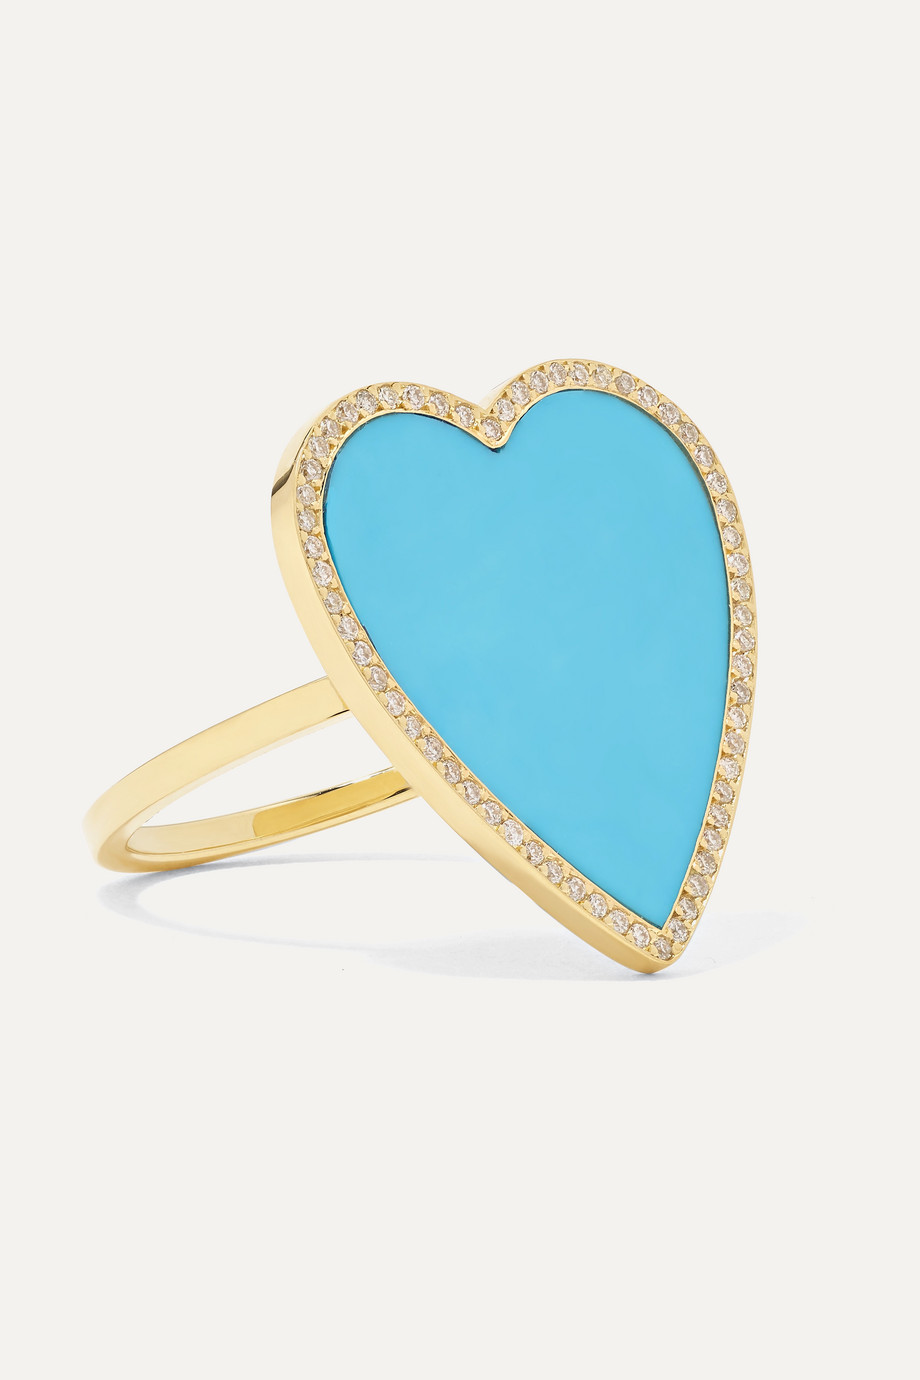 Jennifer Meyer Heart 18-karat gold, turquoise and diamond ring